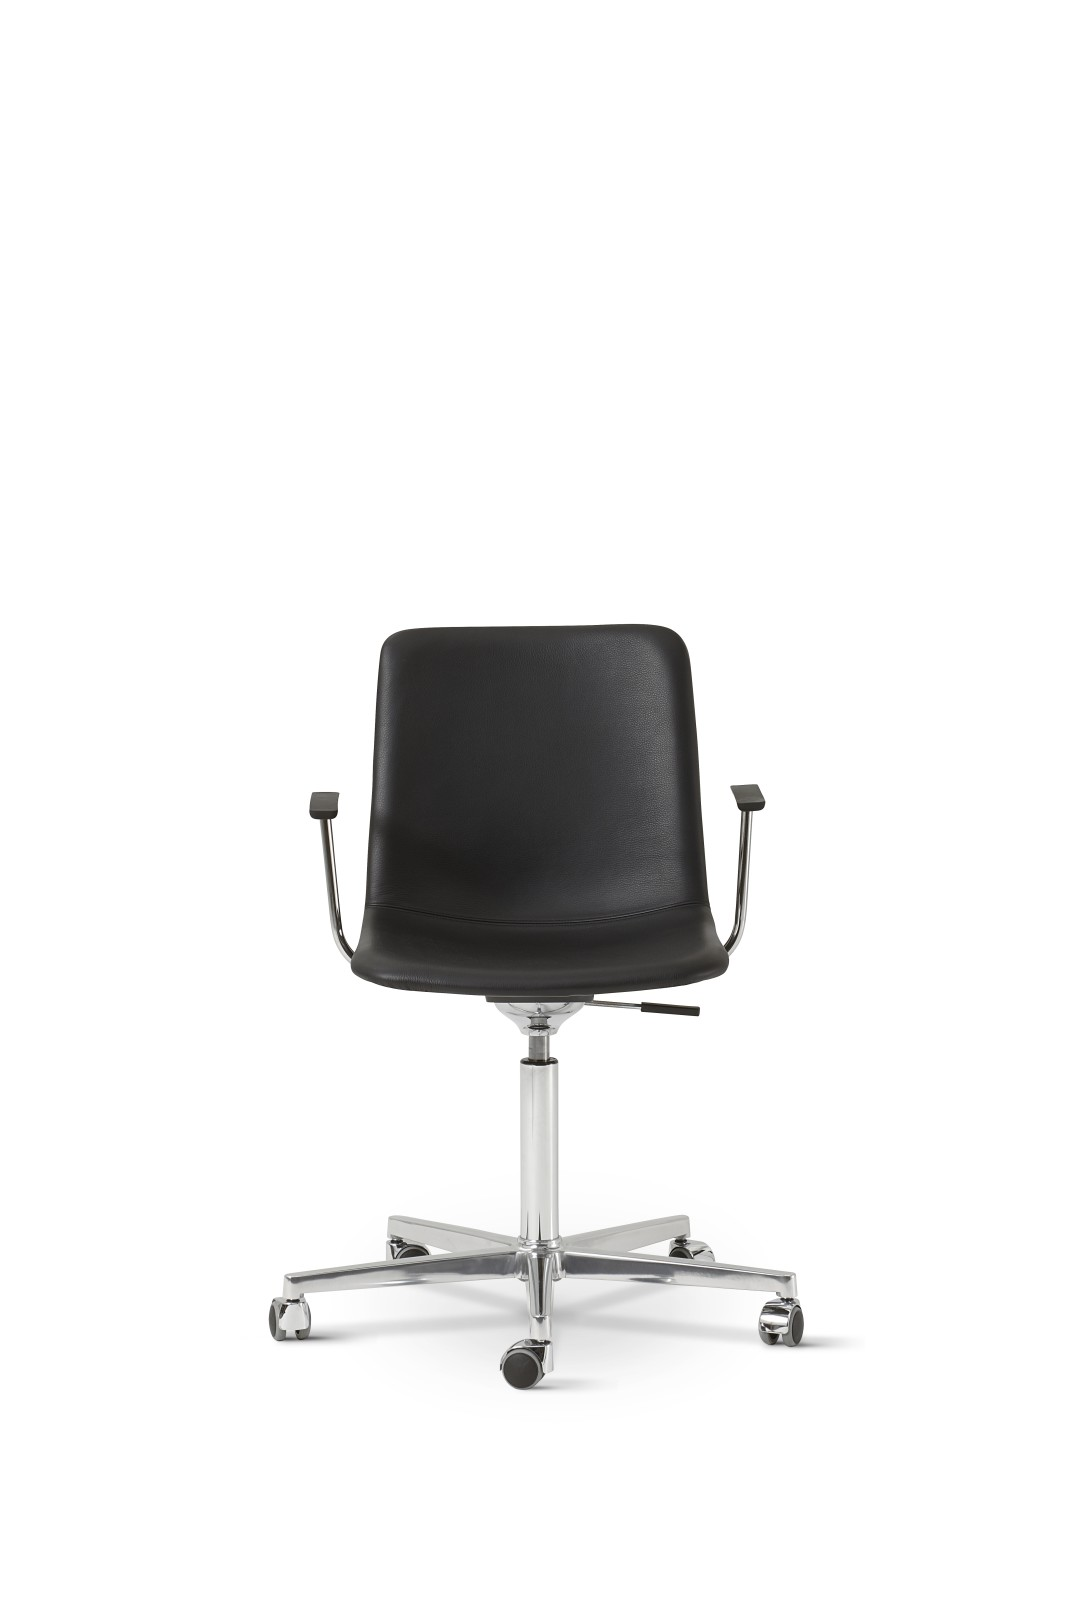 Pato Executive Office Armchair Chrome Steel, Remix 2 113